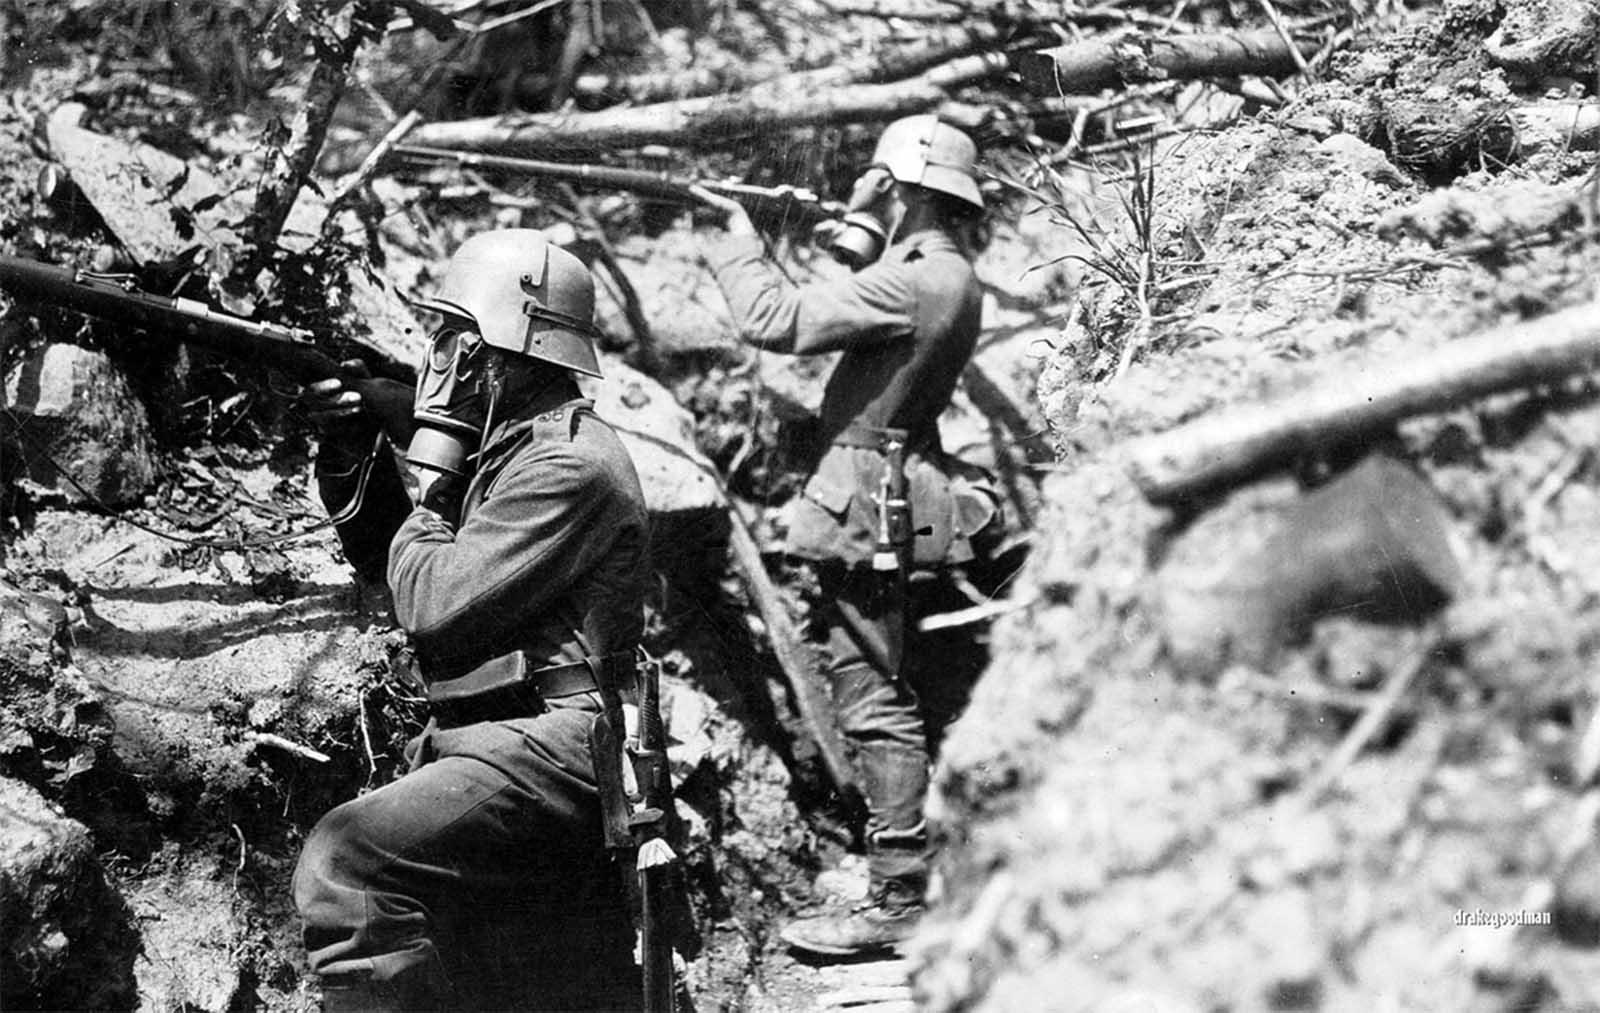 German infantrymen from Infanterie-Regiment Vogel von Falkenstein Nr.56 adopt a fighting pose in a communication trench somewhere on the the Western Front. Both soldiers are wearing gas masks and Stahlhelm helmets, with brow plate attachments called stirnpanzers. The stirnpanzer was a heavy steel plate used for additional protection for snipers and raiding parties in the trenches, where popping your head above ground for a look could be lethal move.